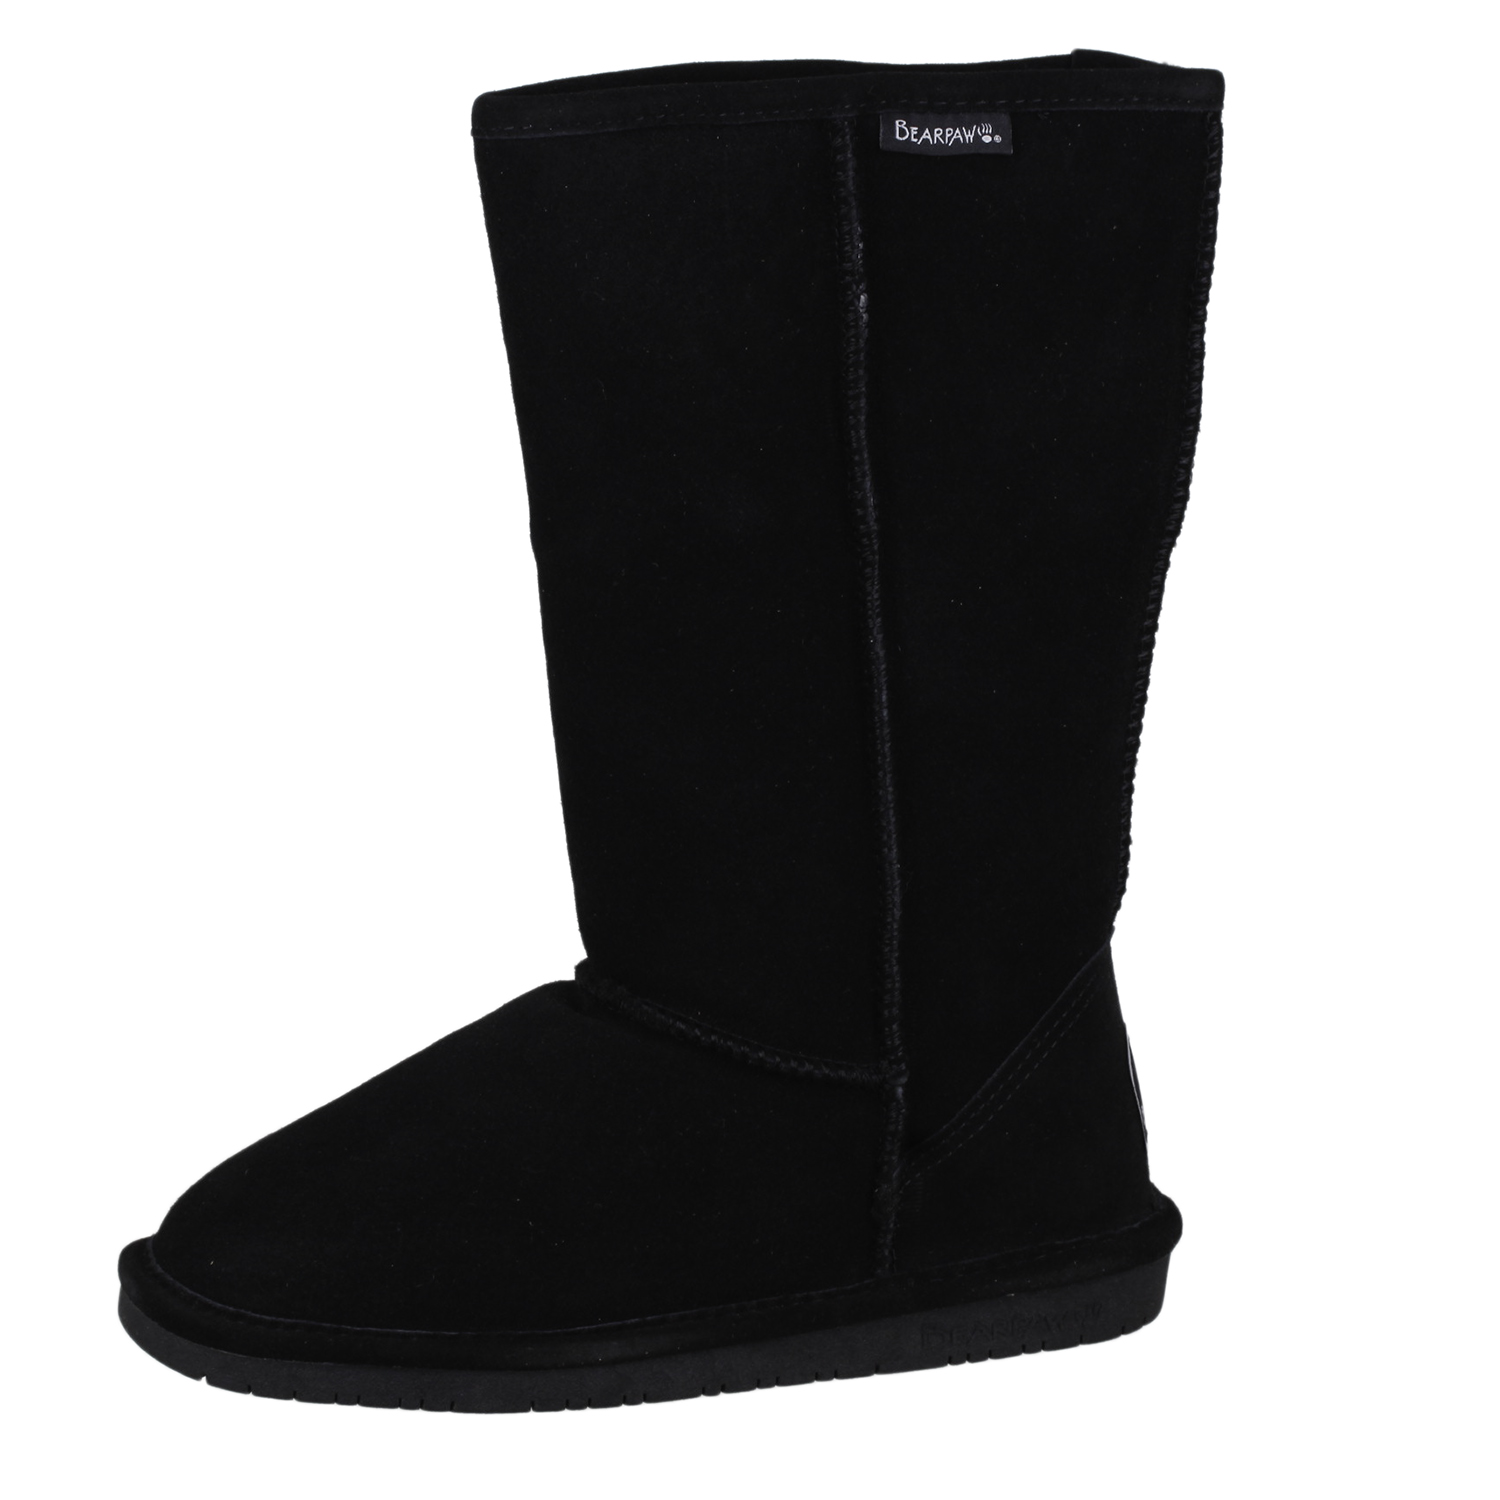 d169e3e0a655 Details about Bearpaw Women s Emma Tall Winter Boot Shoes 612W Black size 7